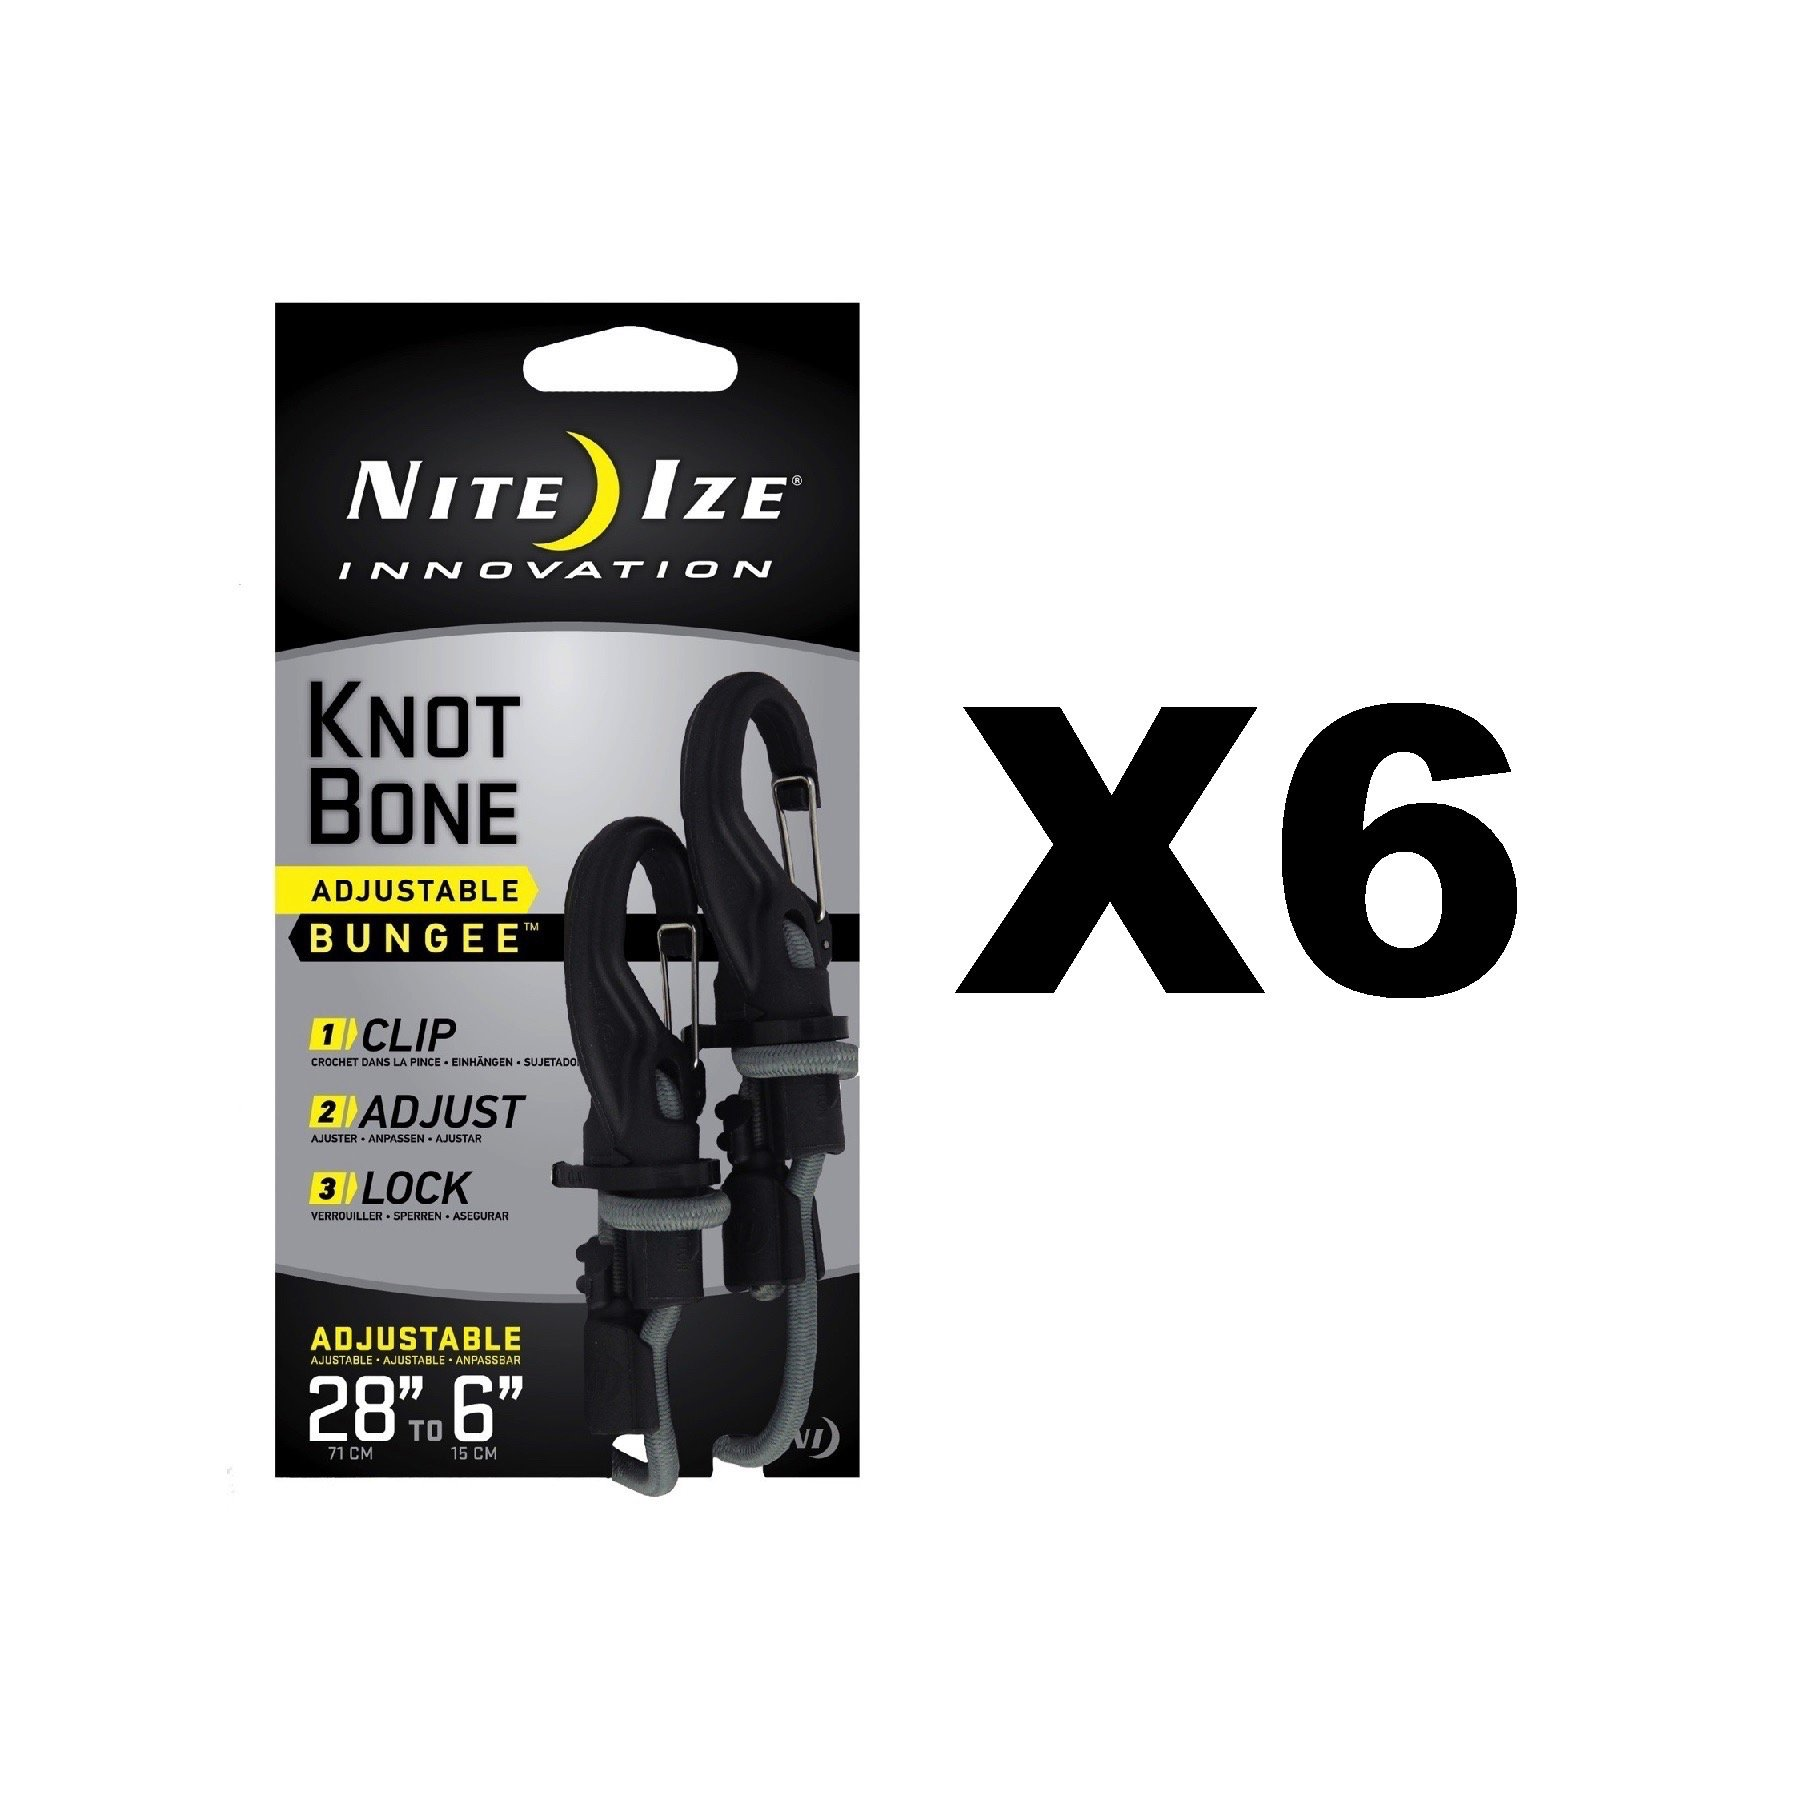 Nite Ize KnotBone Adjustable Bungee Small 5mm 6''-28'' w/ Carabiner Clip (6-Pack)